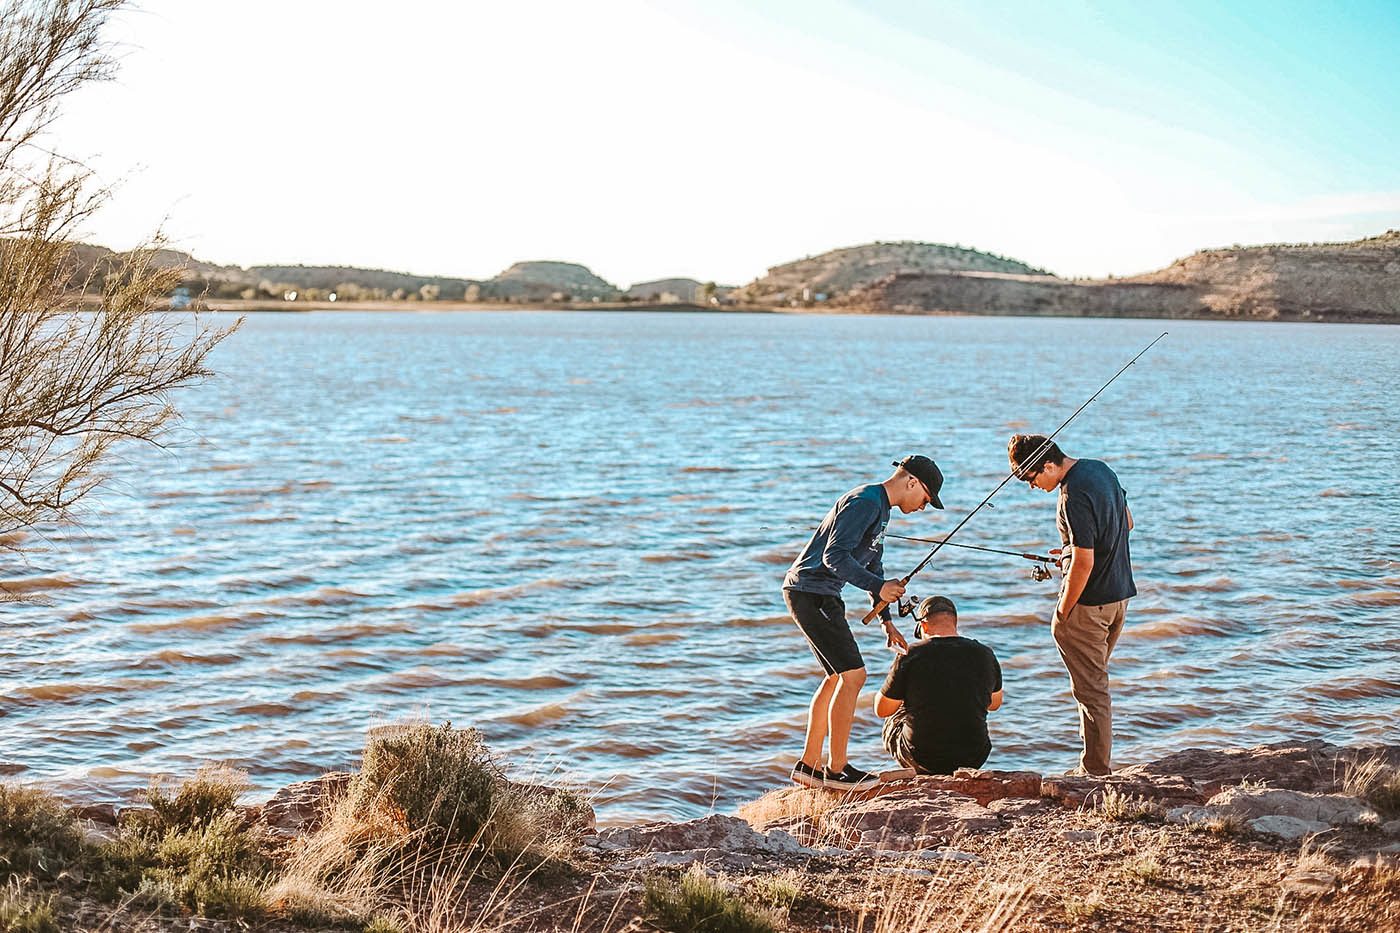 What to do at Lyman Lake - an Arizona State Park